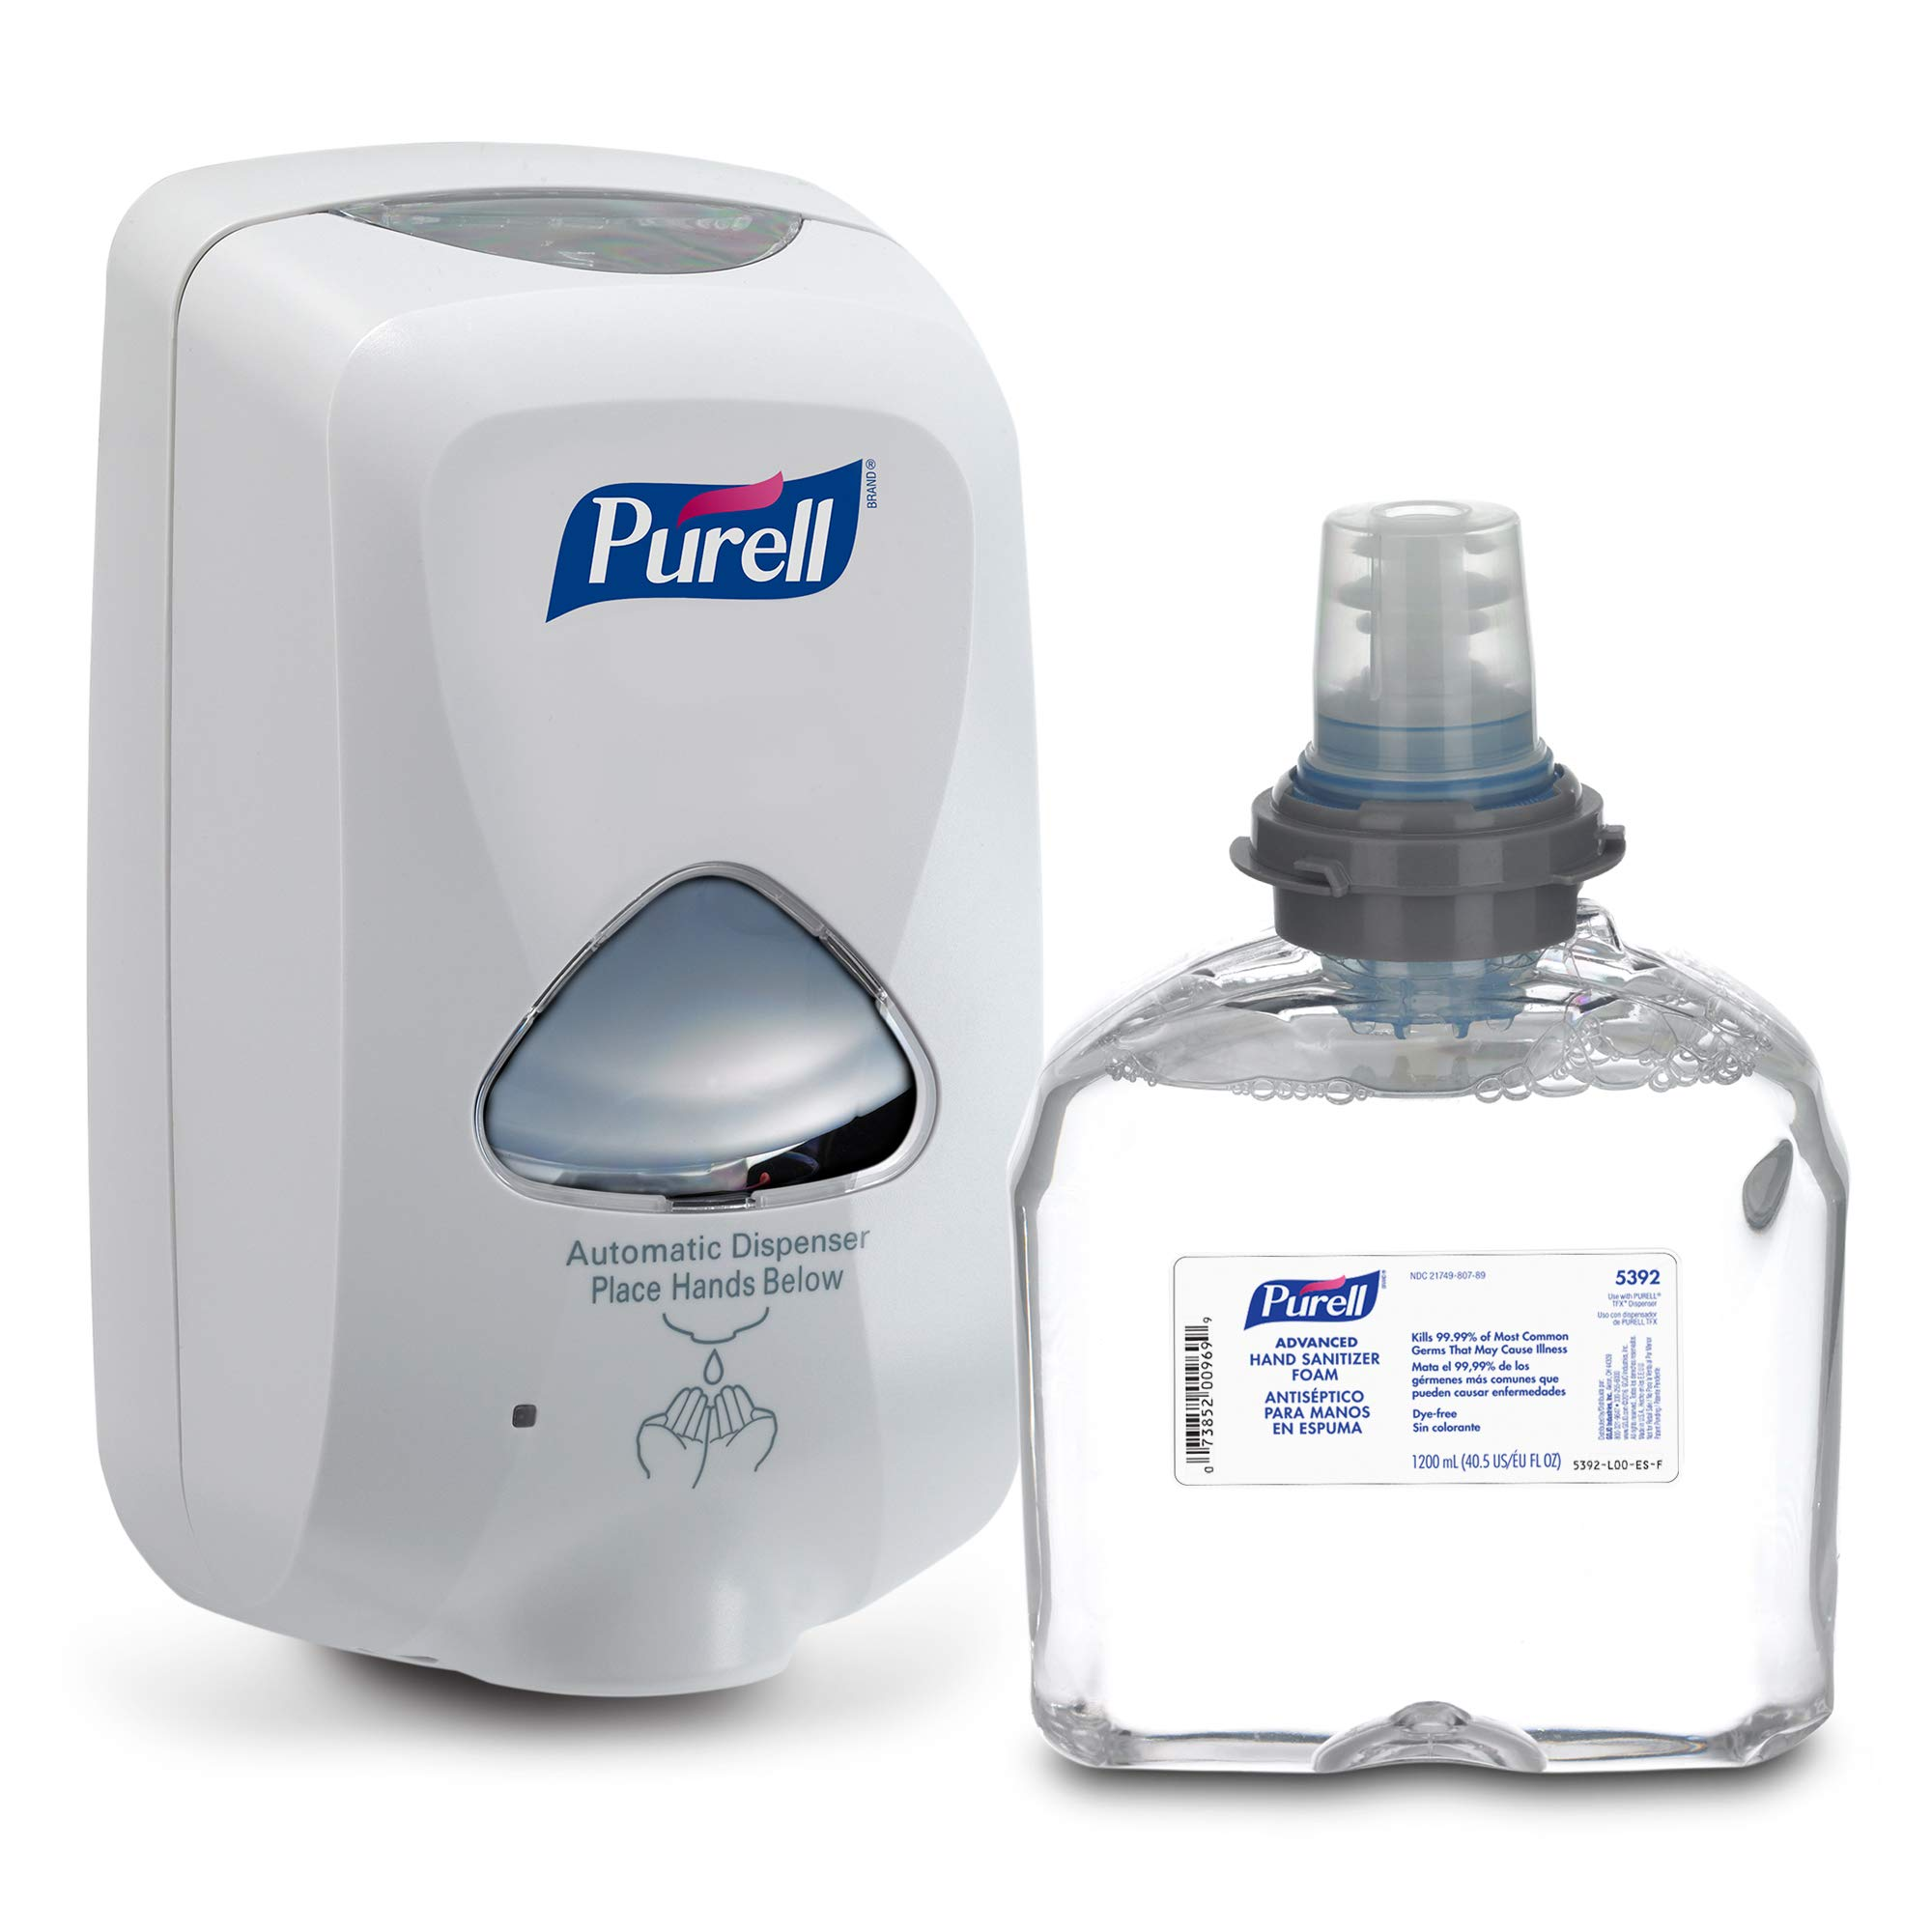 퓨렐 TFX 손세정제 자동 디스펜서, 리필용 손세정제 세트 PURELL Advanced Hand Sanitizer Foam TFX Starter Kit, 1 - 1200 mL Foam Hand Sanitizer Refill + 1 - PURELL TFX Dove Grey Touch-Free Dispenser – 5392-D1